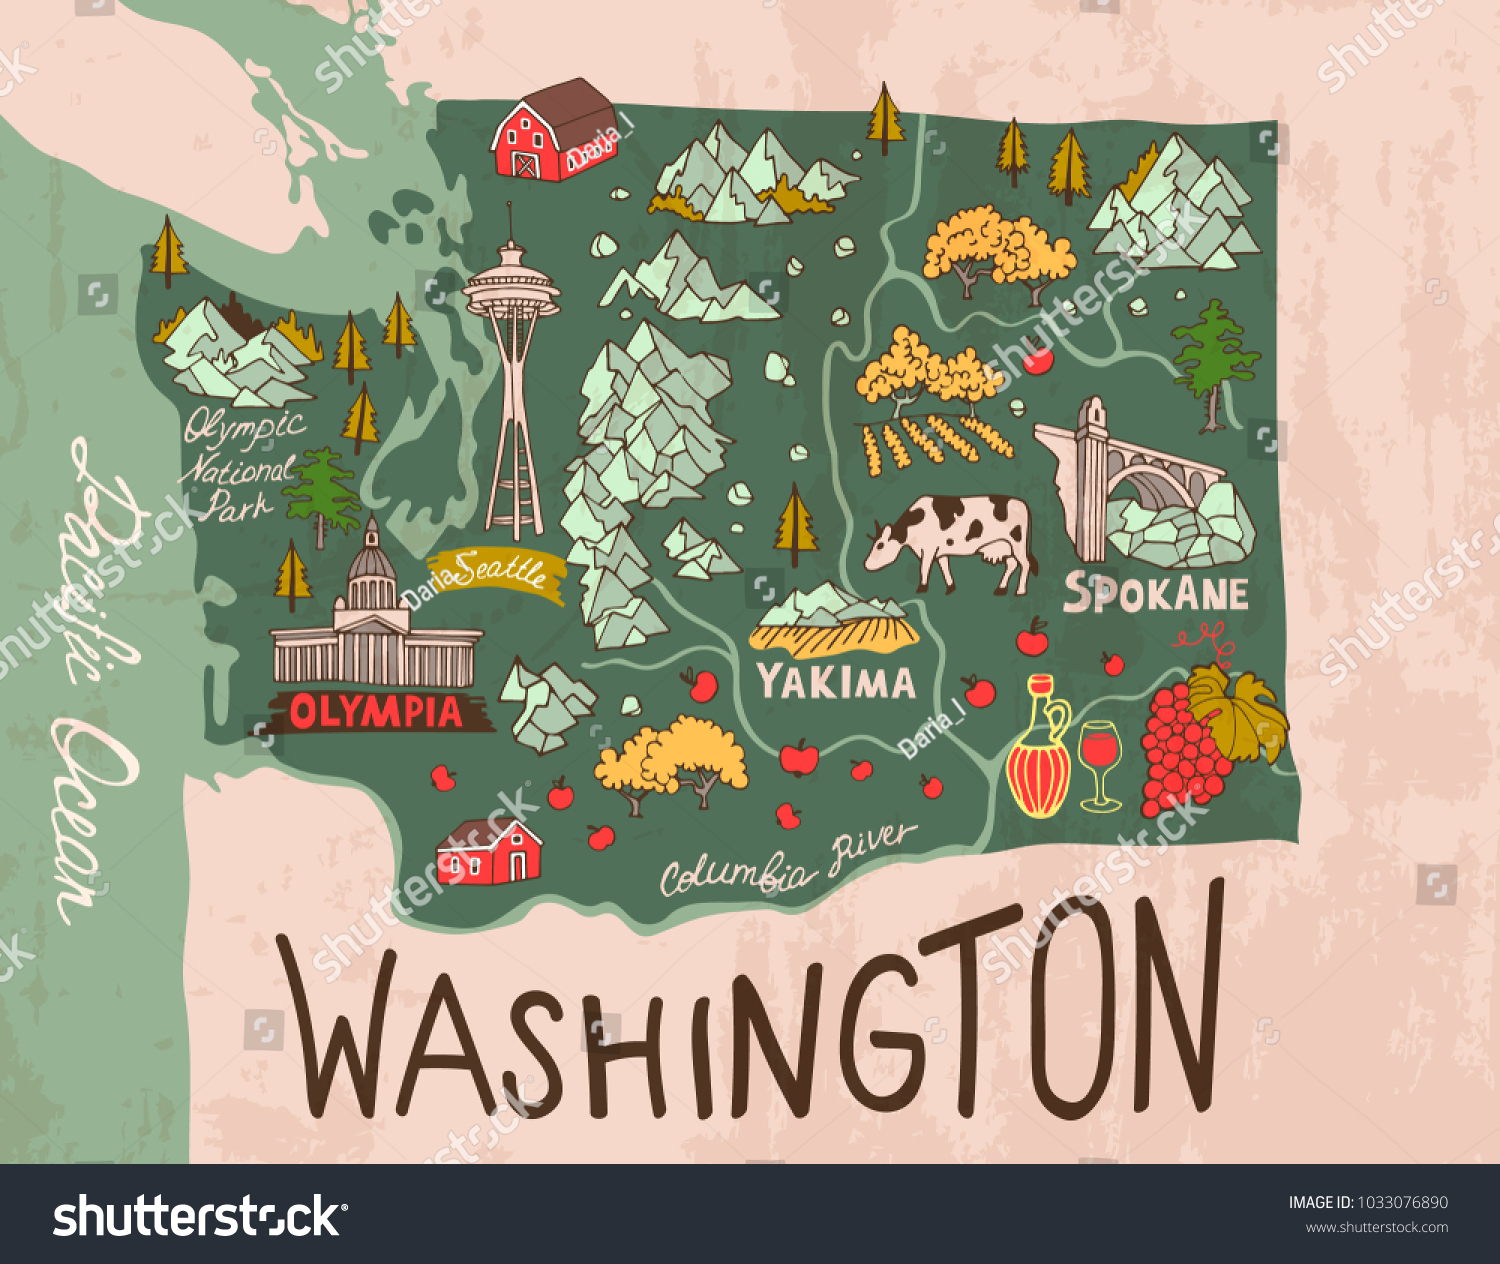 Cartoon Map Washington State Travel Attractions Stock Vector Royalty Free 1033076890